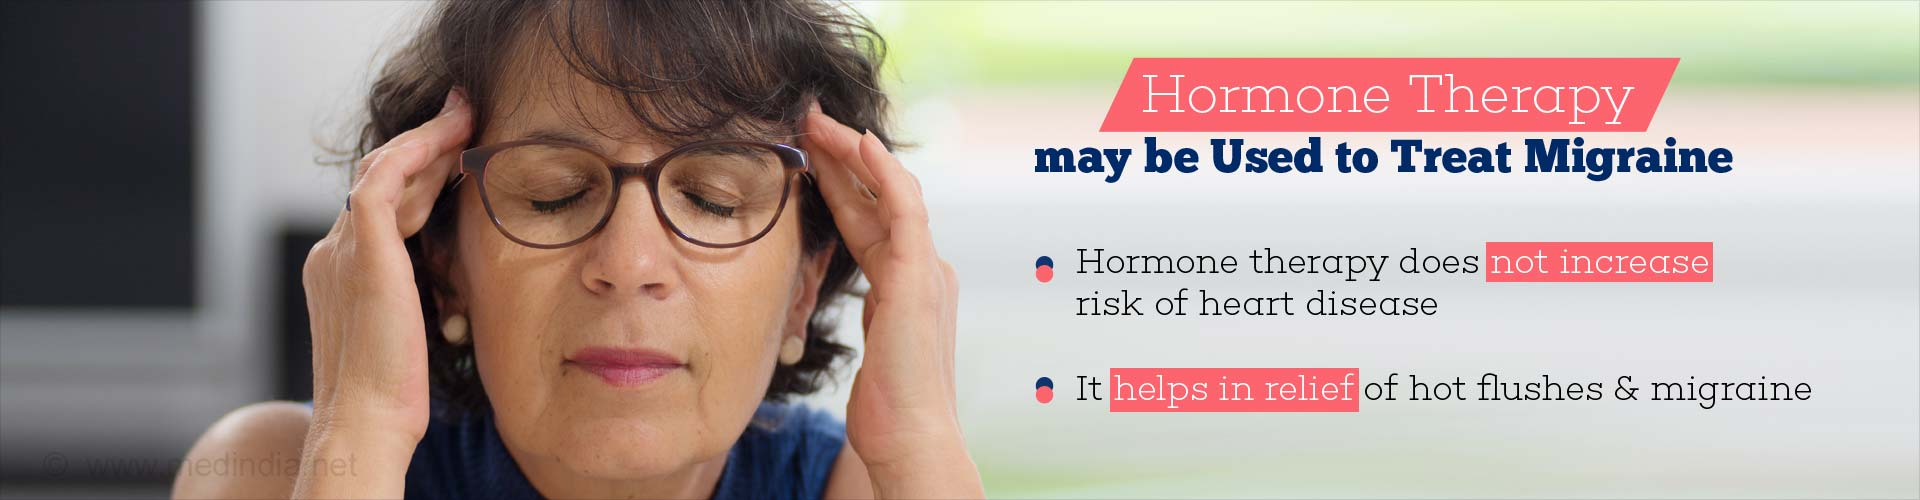 Hormone Therapy for Migraine Offers No Risk of Heart Disease